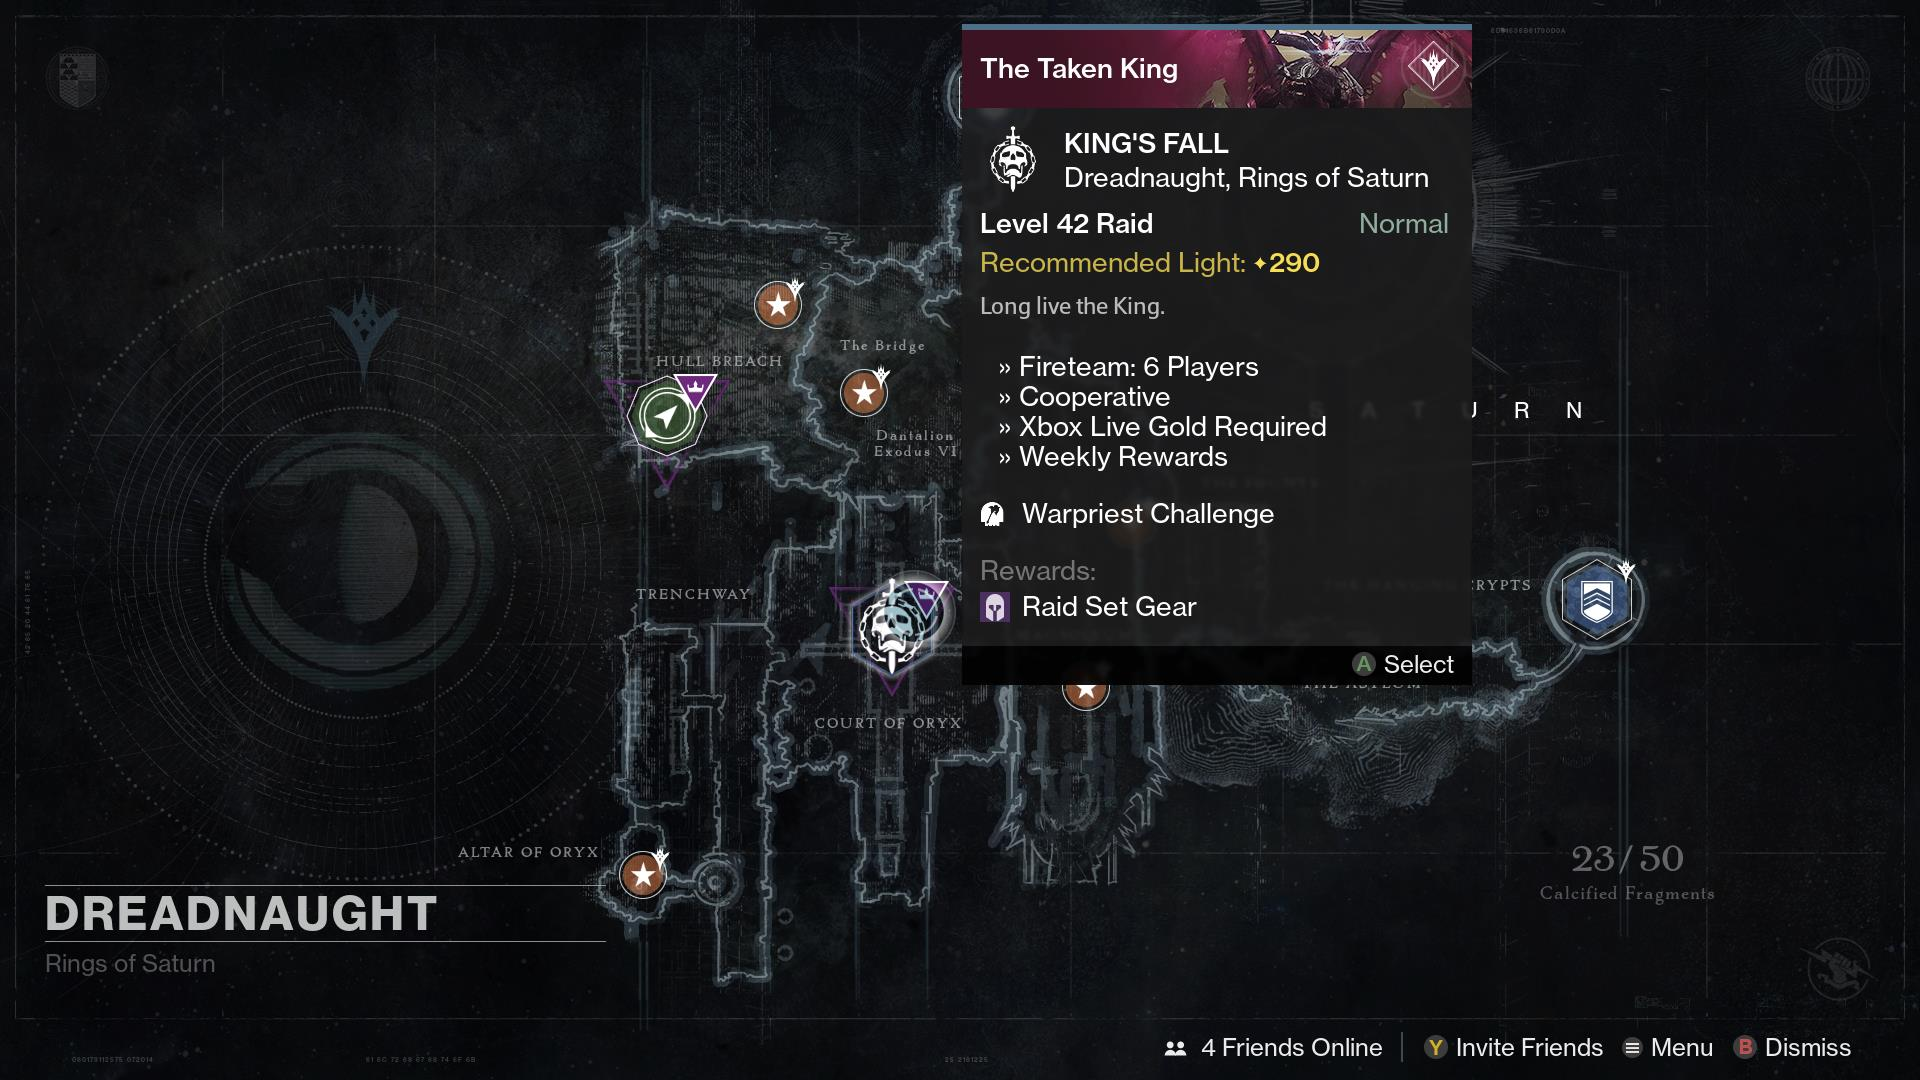 Nightfall matchmaking taken king